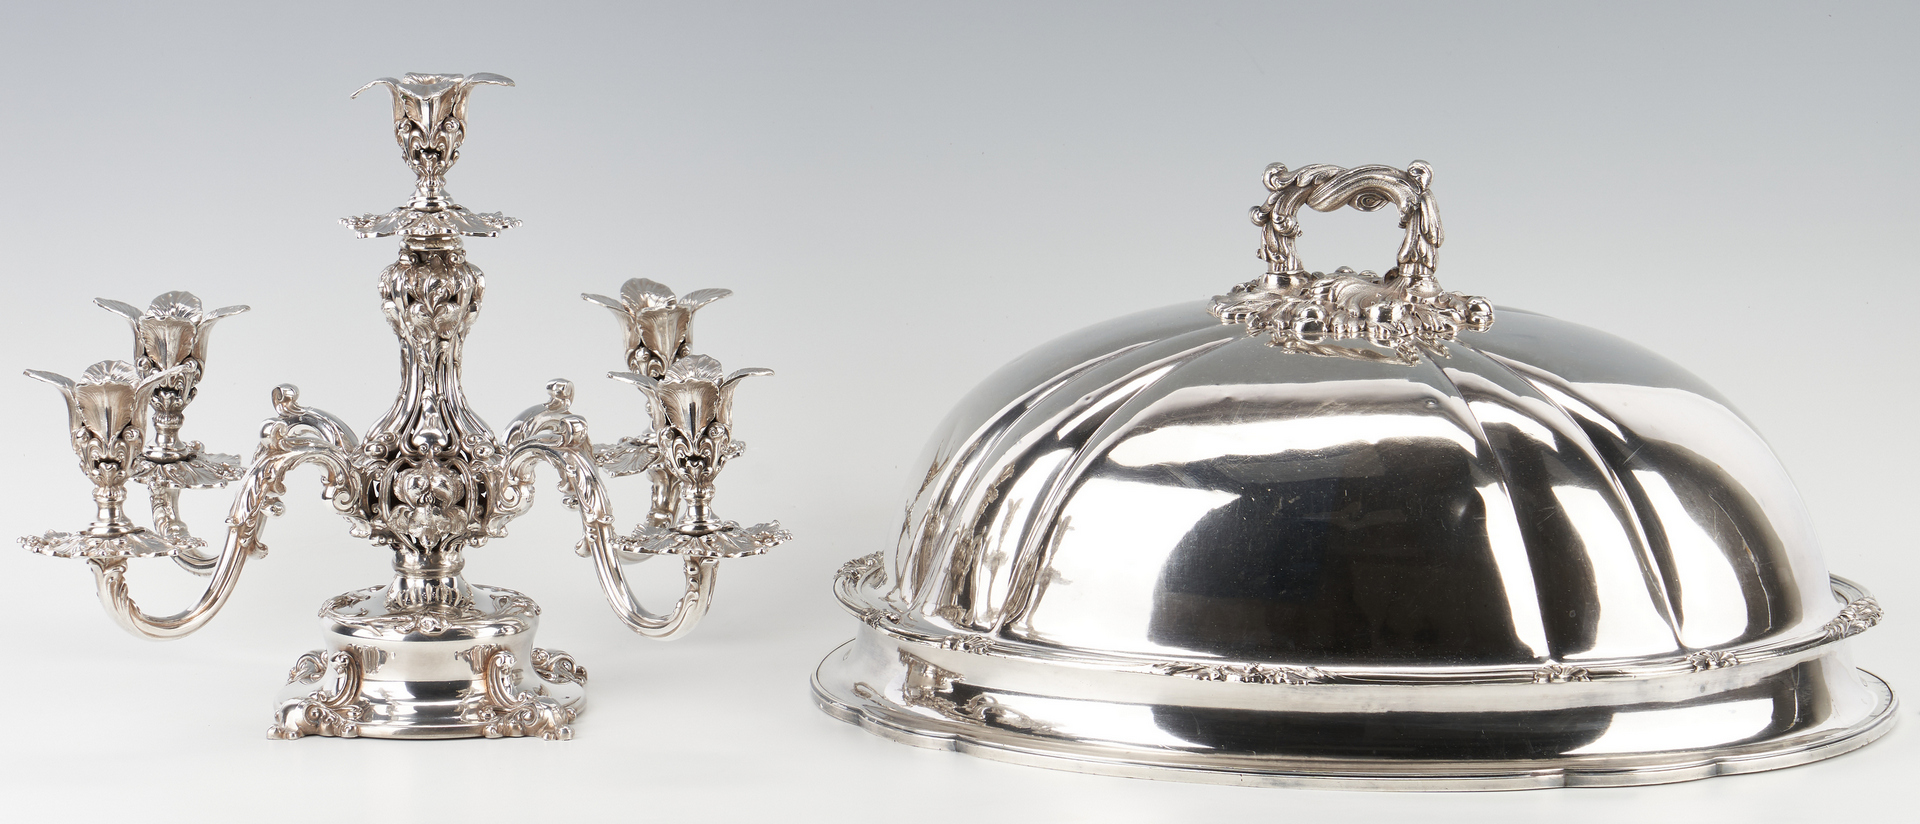 Lot 949: Old Sheffield Meat Dome and Reed & Barton Candelabra/Epergne